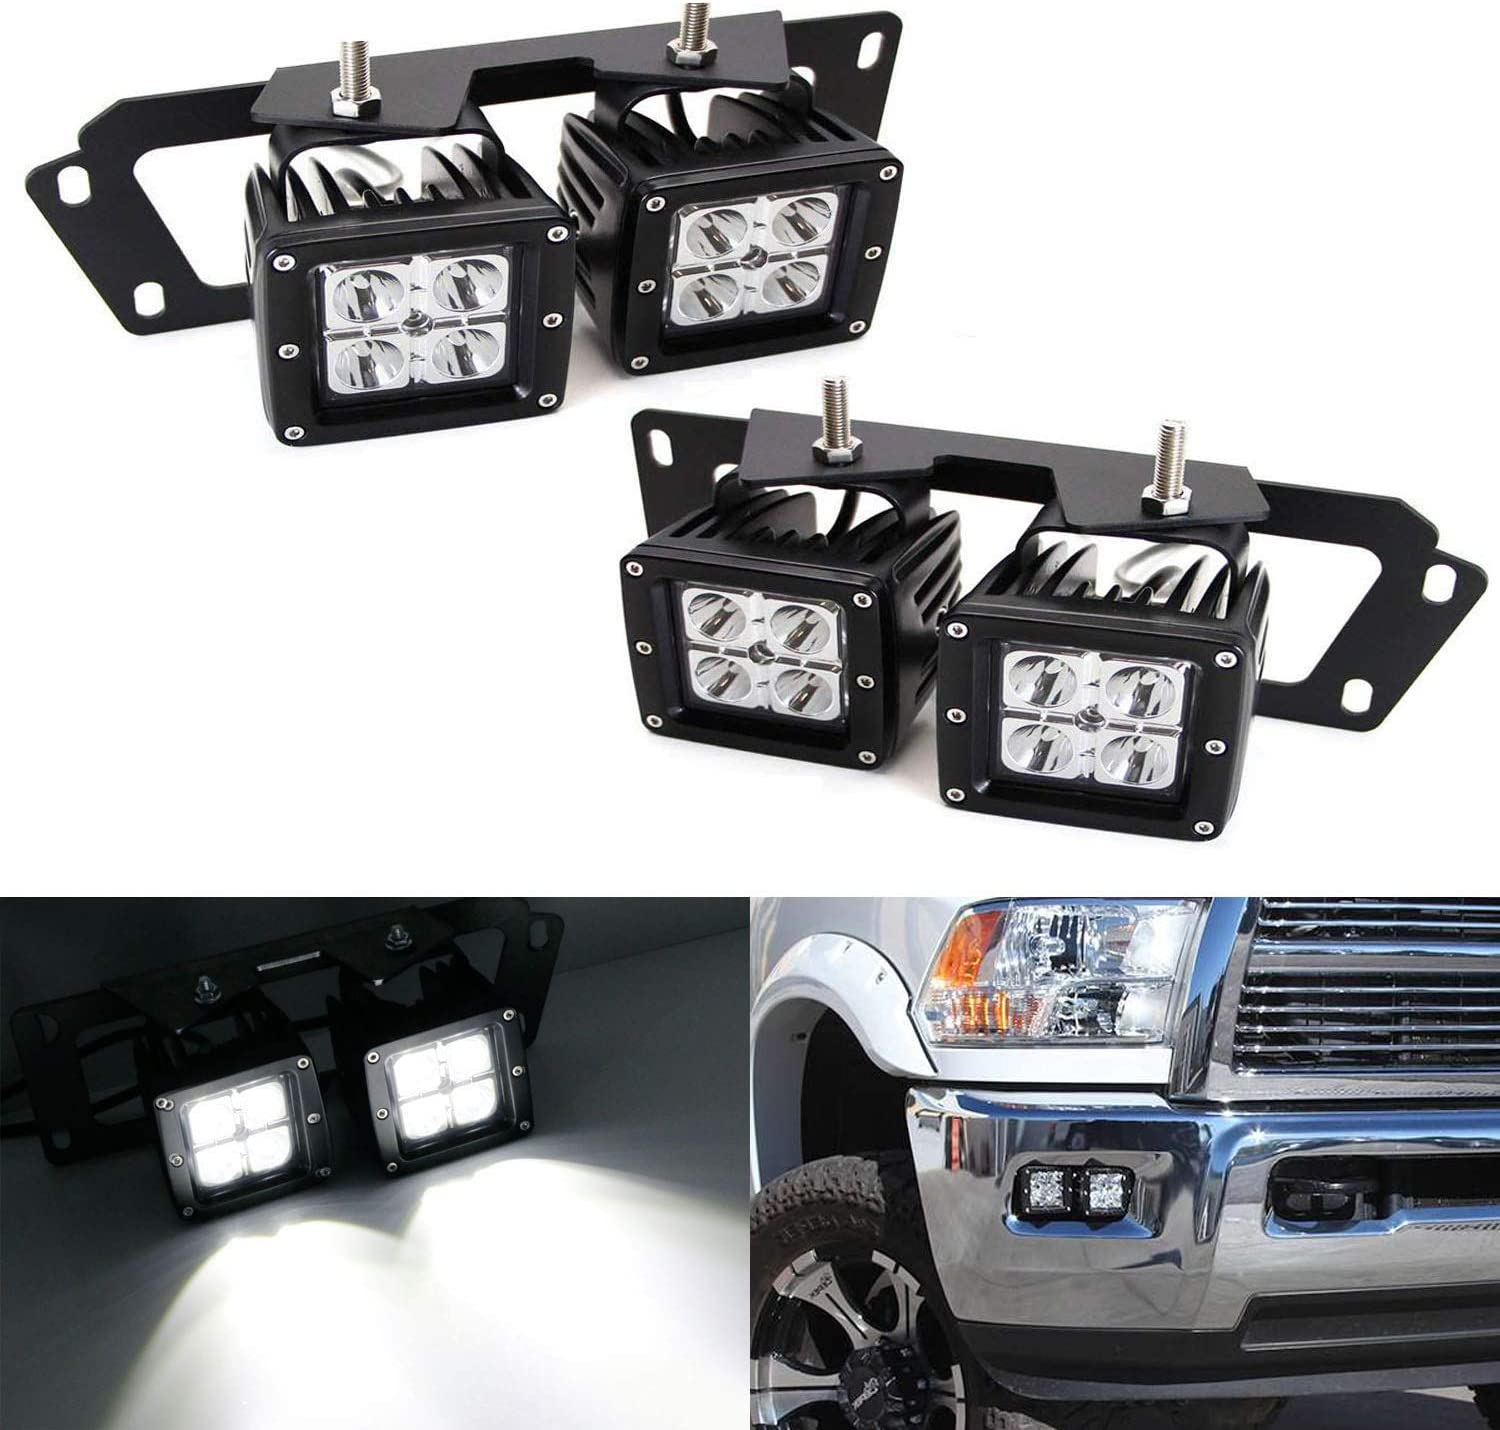 iJDMTOY LED Pod Light Fog Lamp Compatible With Dodge 2009-12 RAM 1500 & 10-18 RAM 2500 3500, Includes (4) 20W High Power CREE LED Cubes, Foglight Location Mounting Brackets & Wiring/Adapter Harnesses